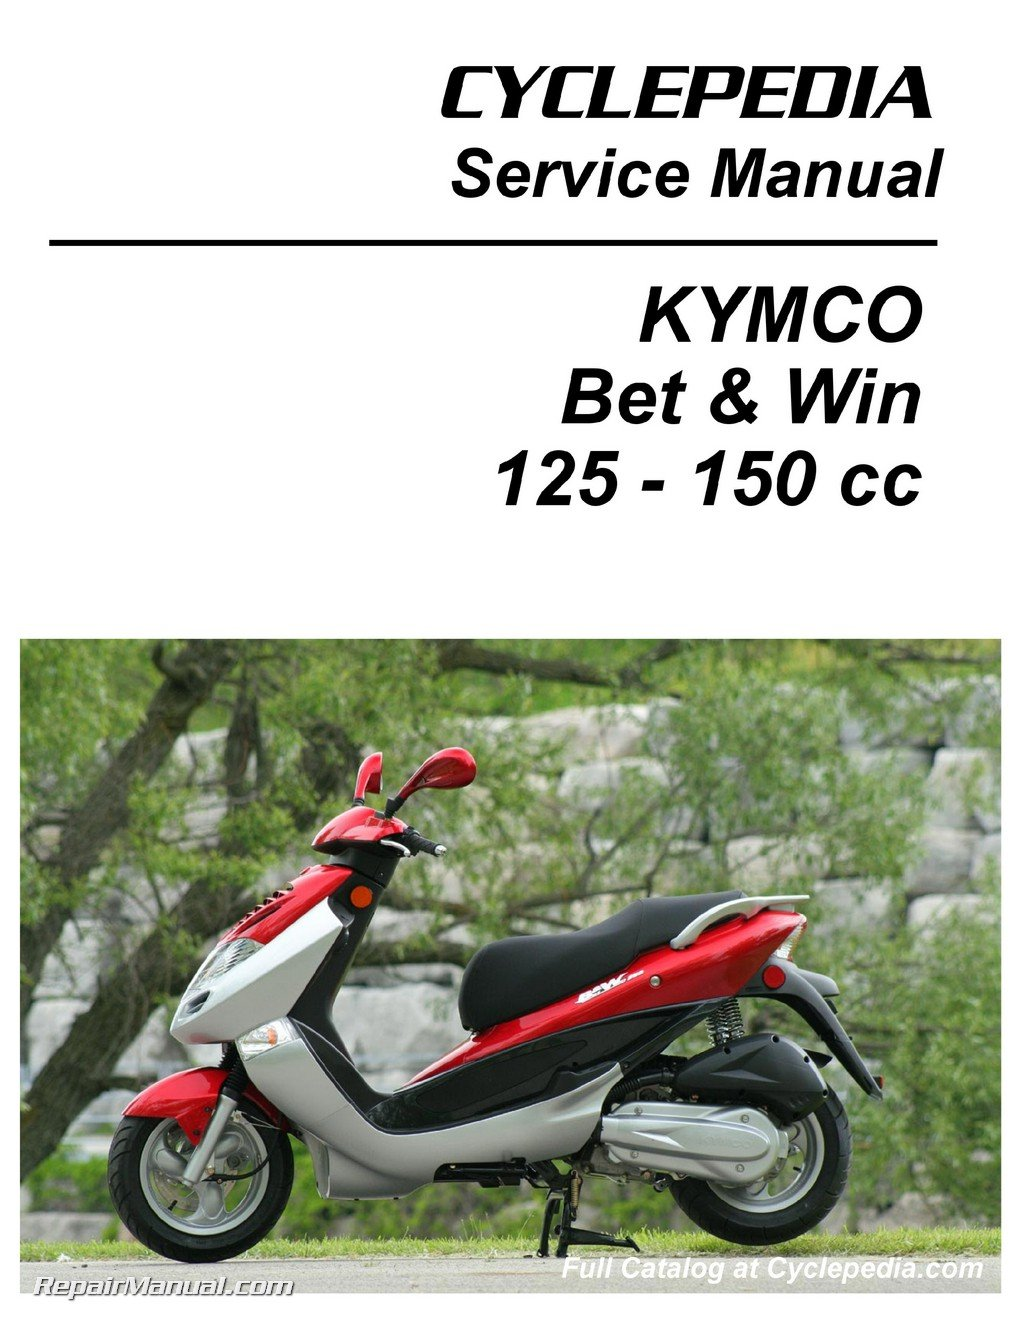 Kymco Engine Diagram Get Free Image About Wiring Diagram